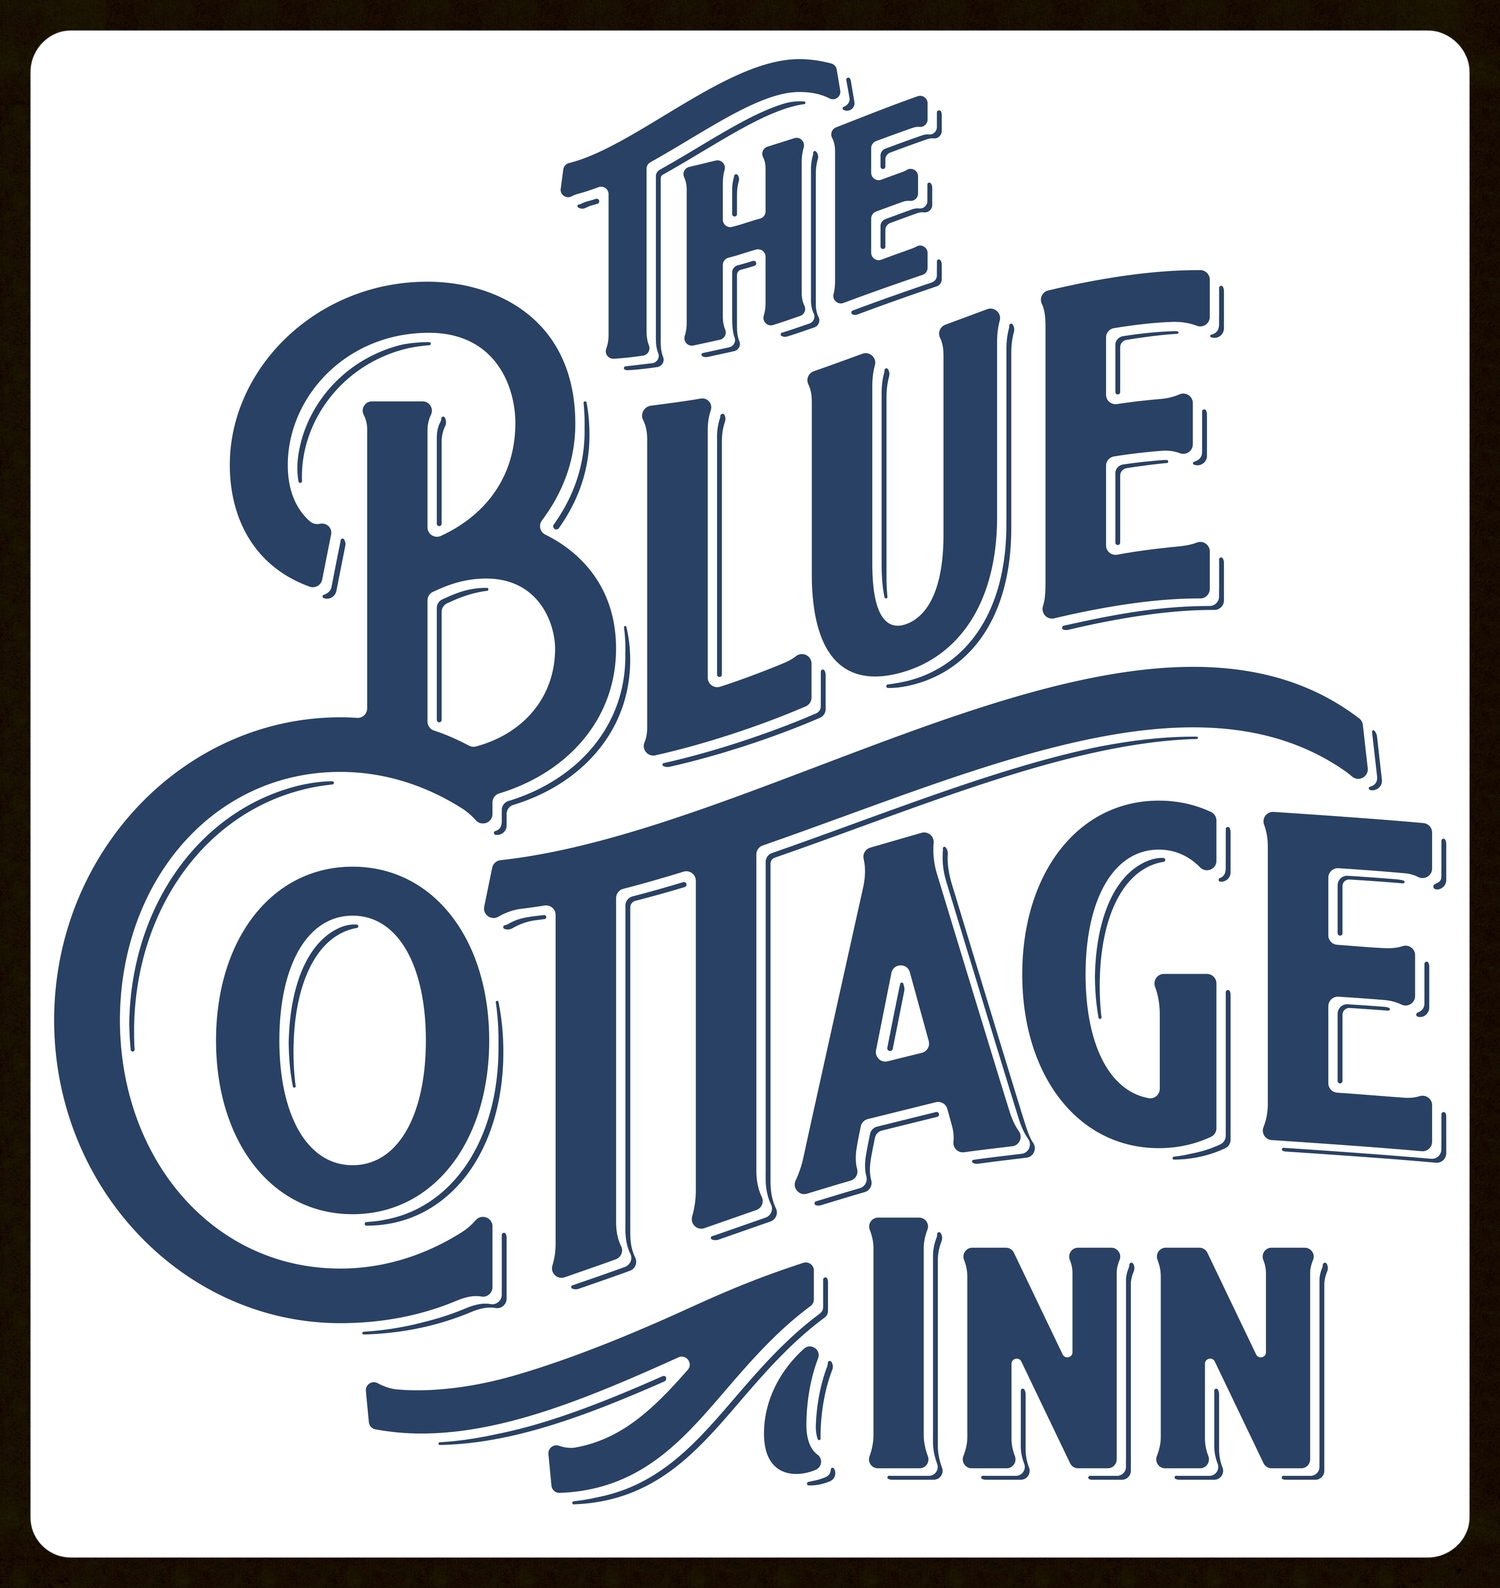 The Blue Cottage Inn